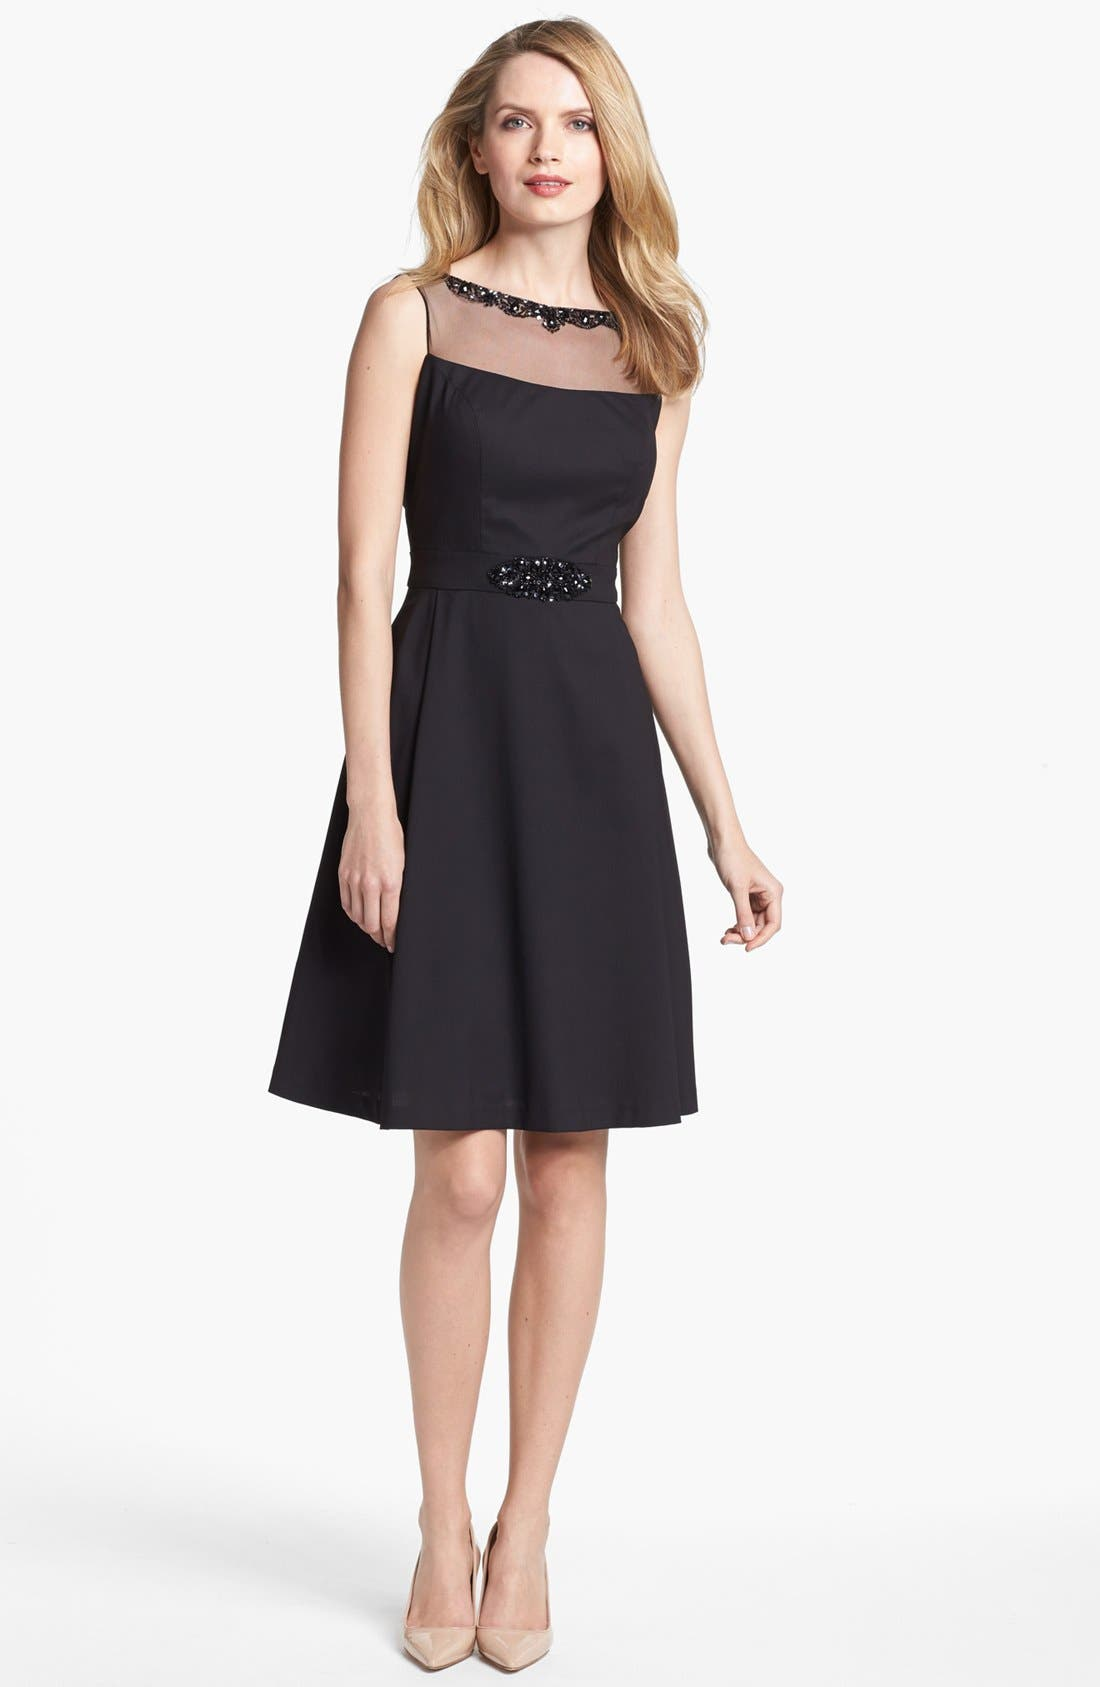 Alternate Image 1 Selected - Patra Embellished Sleeveless Fit & Flare Dress (Regular & Petite)